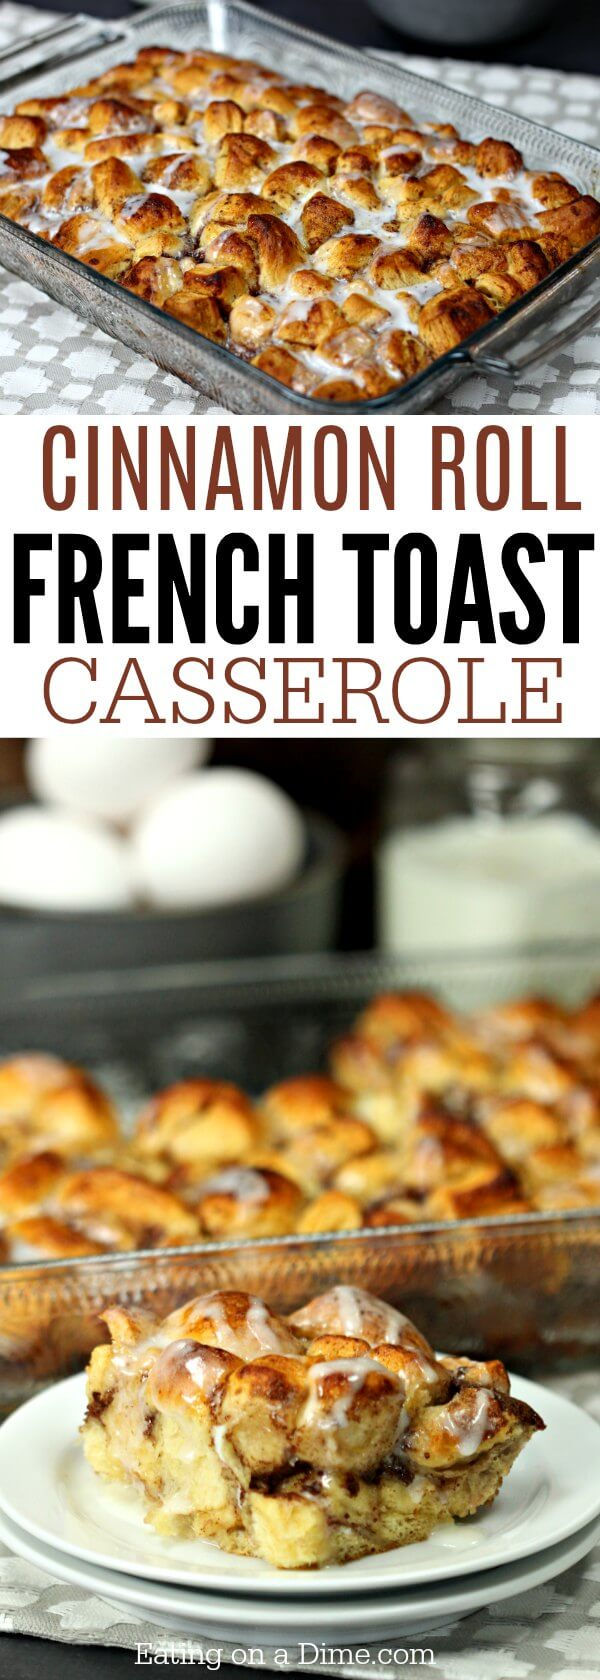 Cinnamon Roll French Toast Casserole Recipe - Cinnamon Roll Casserole #frenchtoastrollups